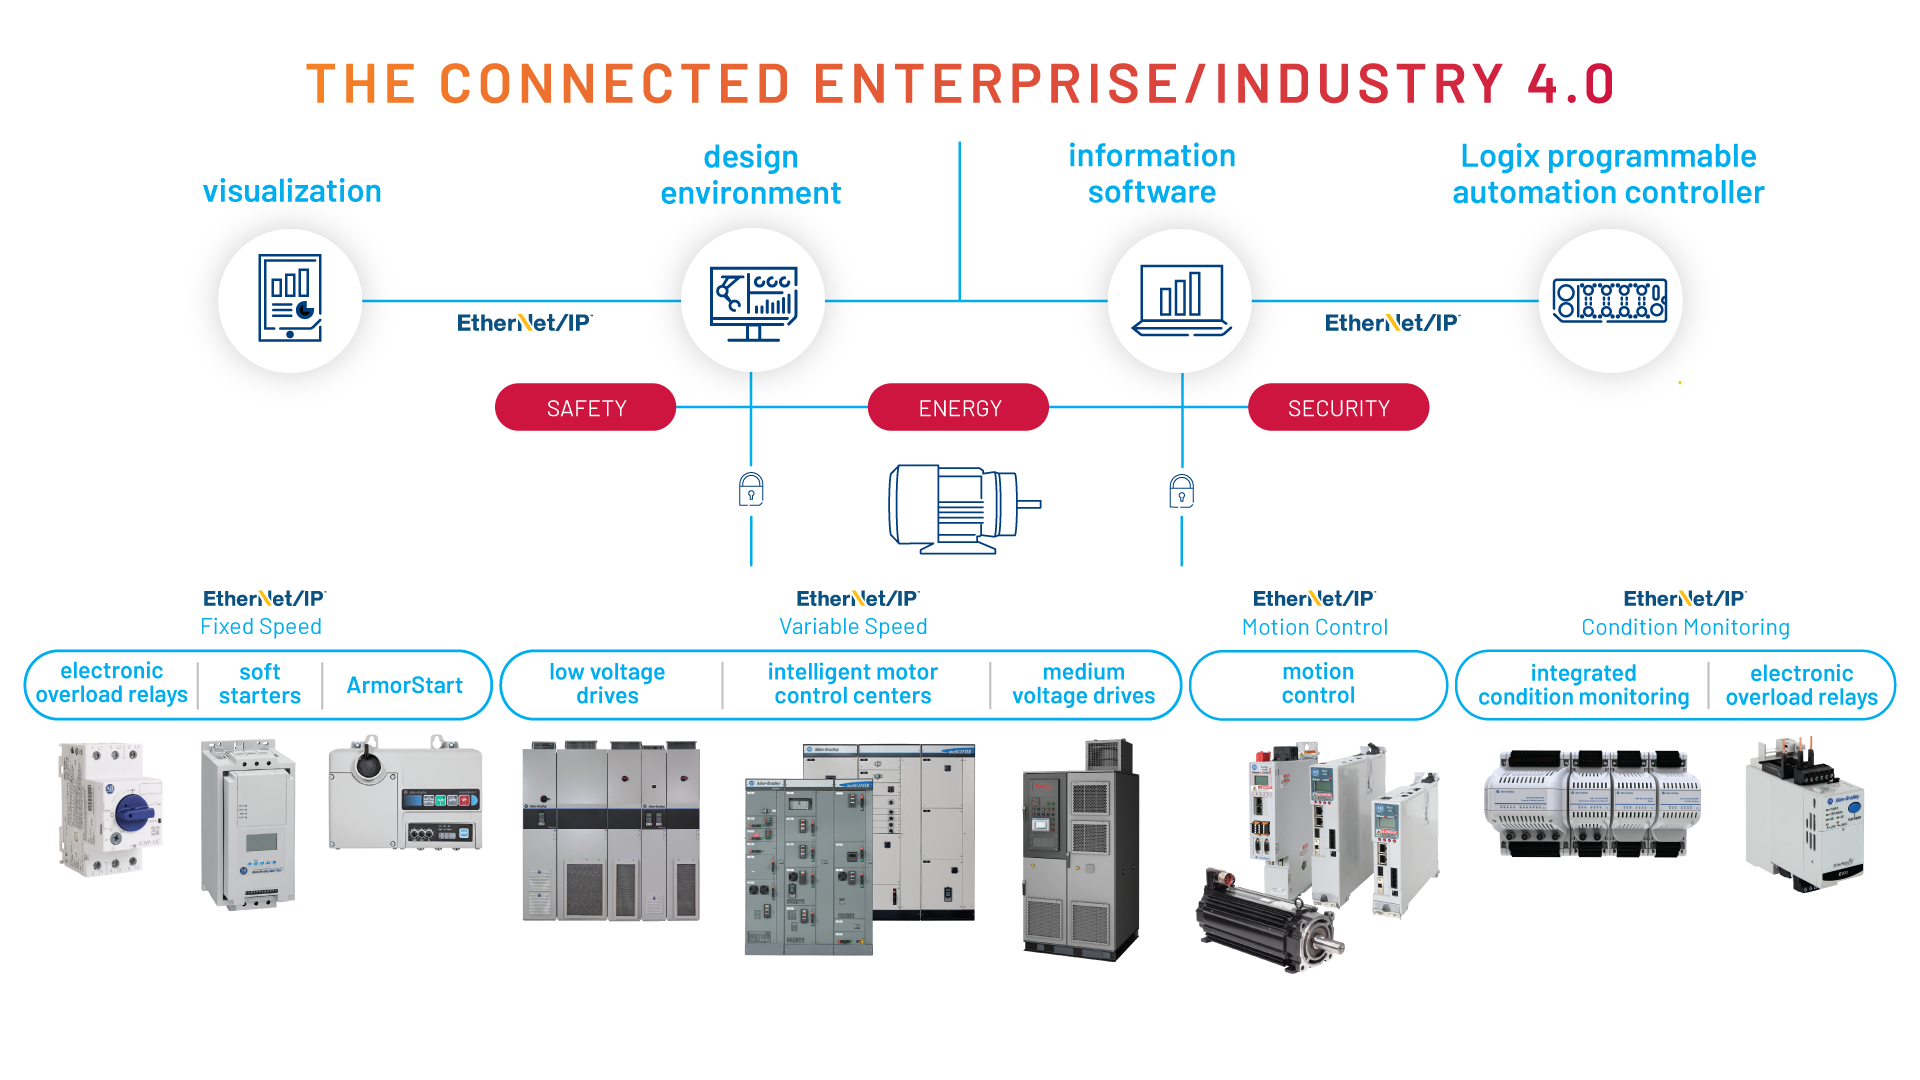 Diagram illustrating the benefits of Smart Motor Control devices within The Connected Enterprise and how they all connect